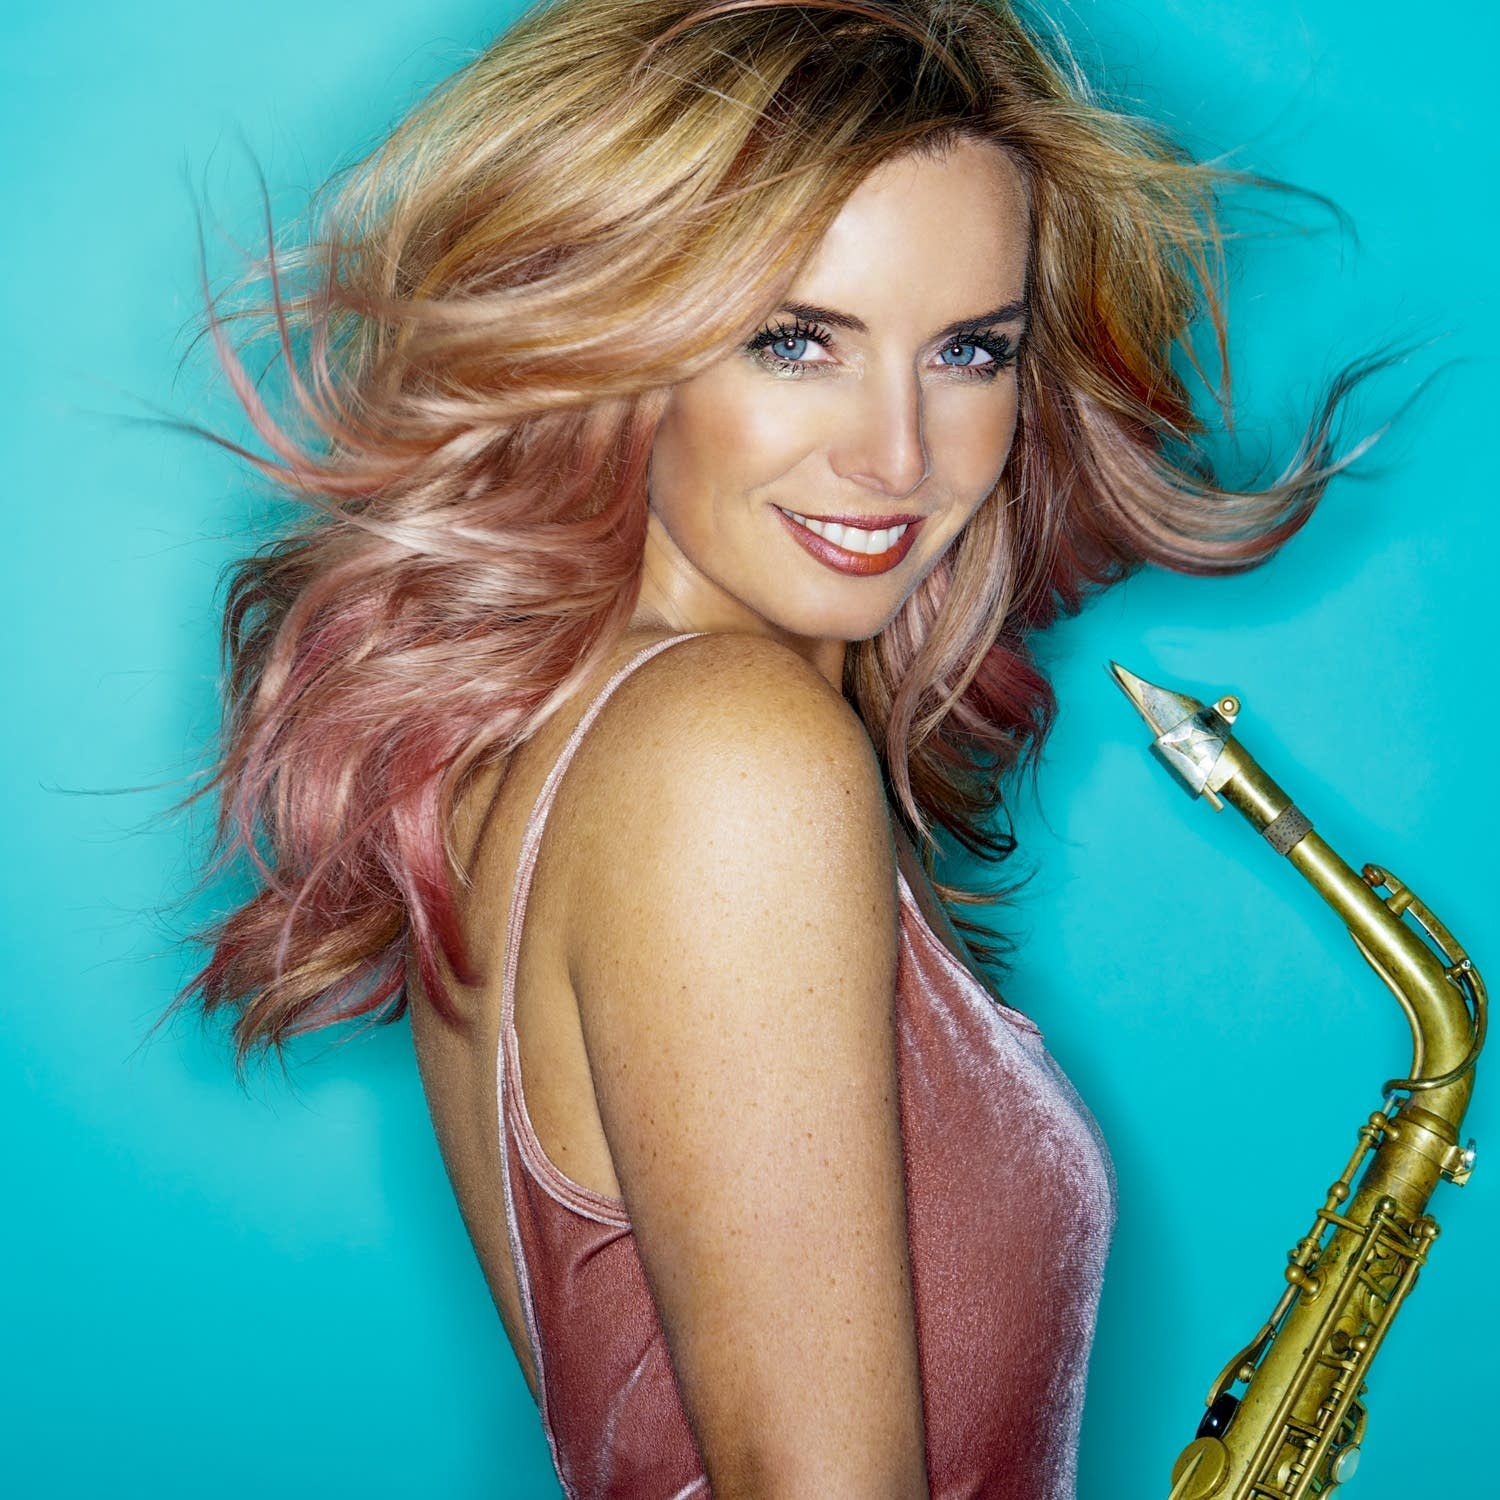 A conversation with saxophonist Candy Dulfer, frequent